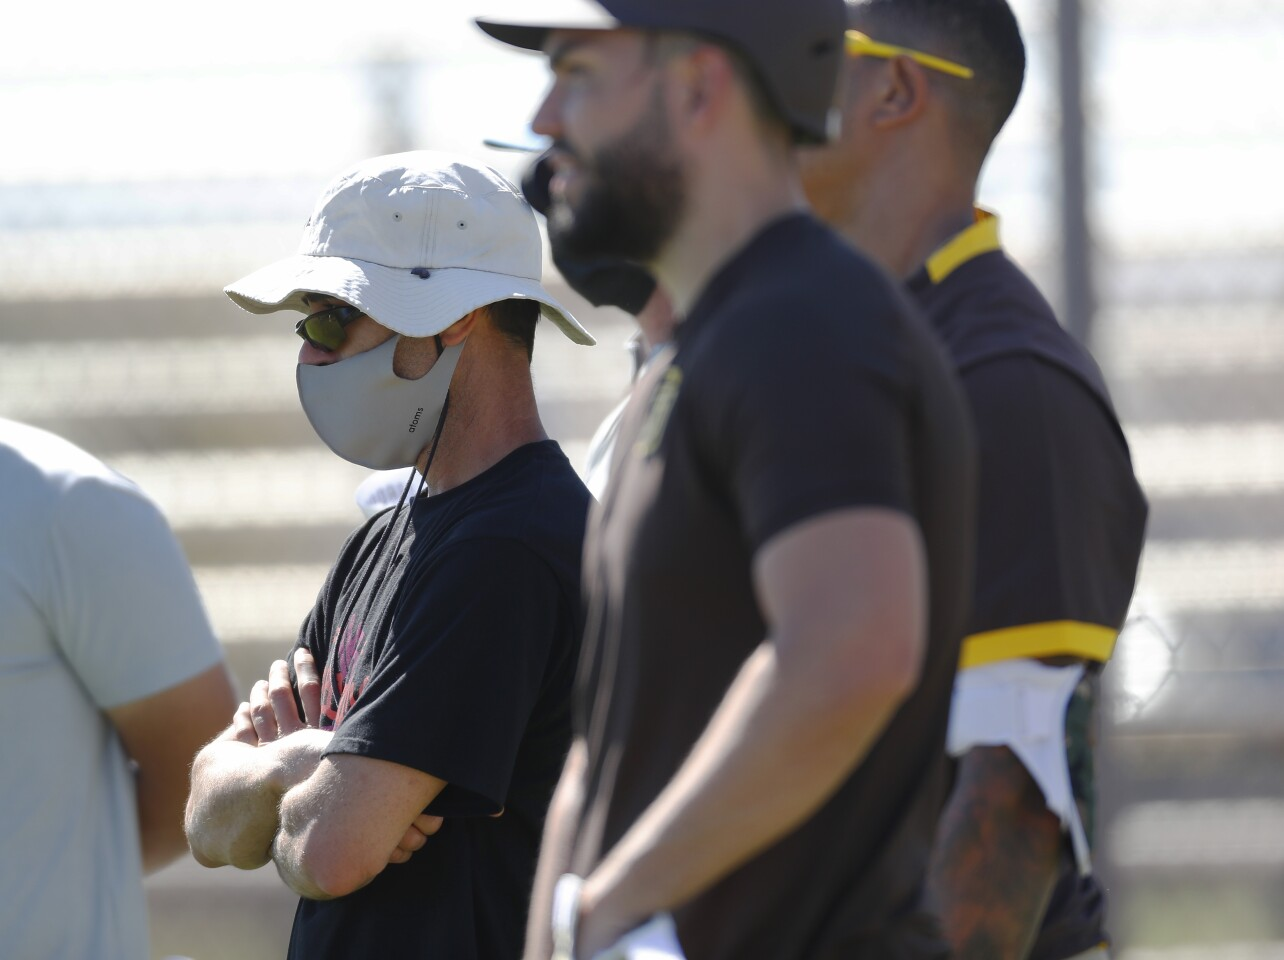 PEORIA, AZ - FEBRUARY 24: San Diego Padres GM A.J. Preller looks on during a spring training practice on Wednesday, Feb. 24, 2021 in Peoria, AZ. (K.C. Alfred / The San Diego Union-Tribune)